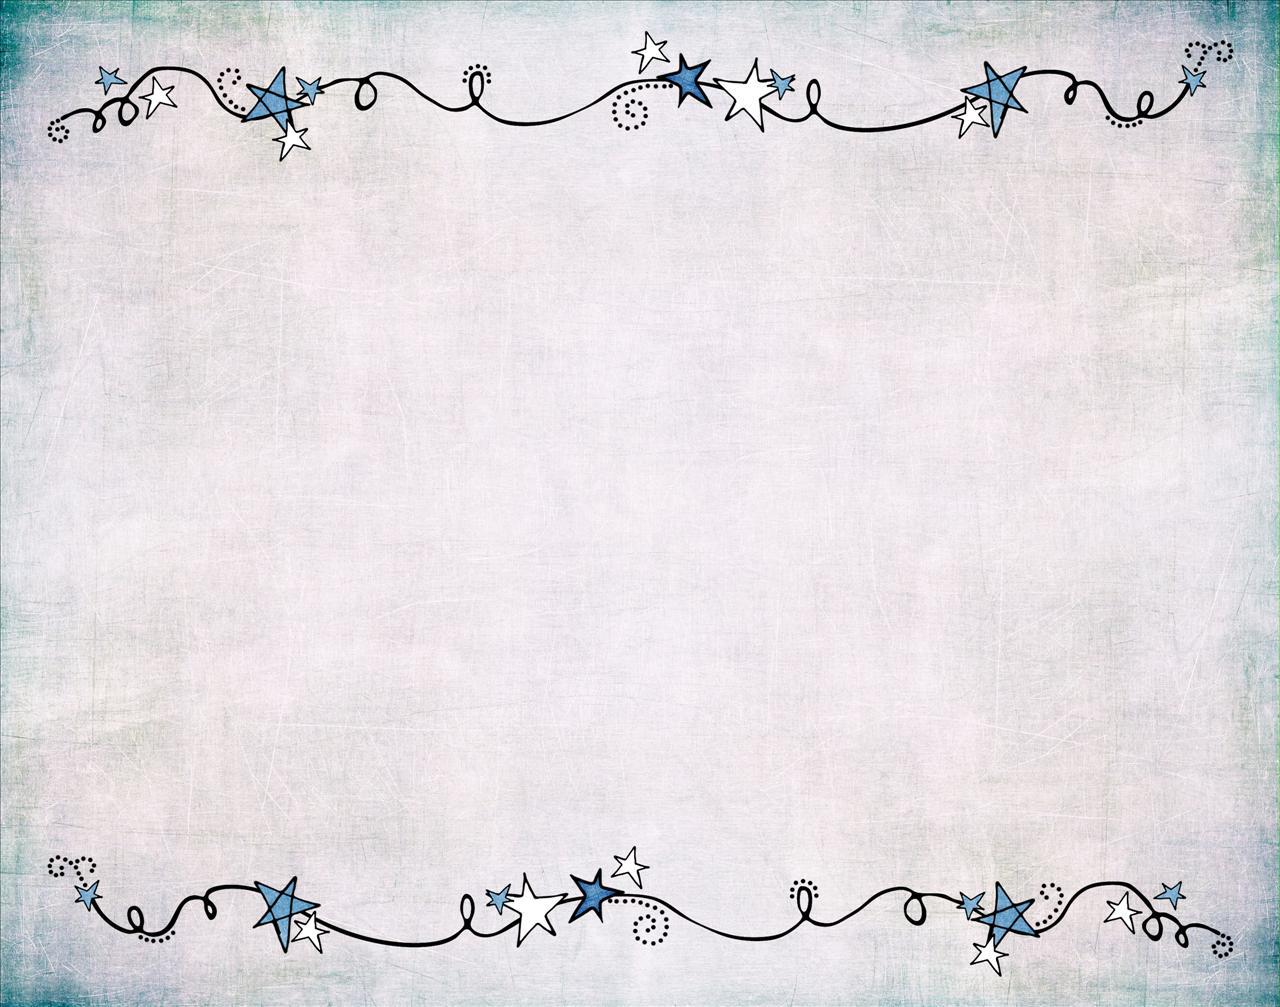 Church Borders And Backgrounds Pictures to Pin on Pinterest.